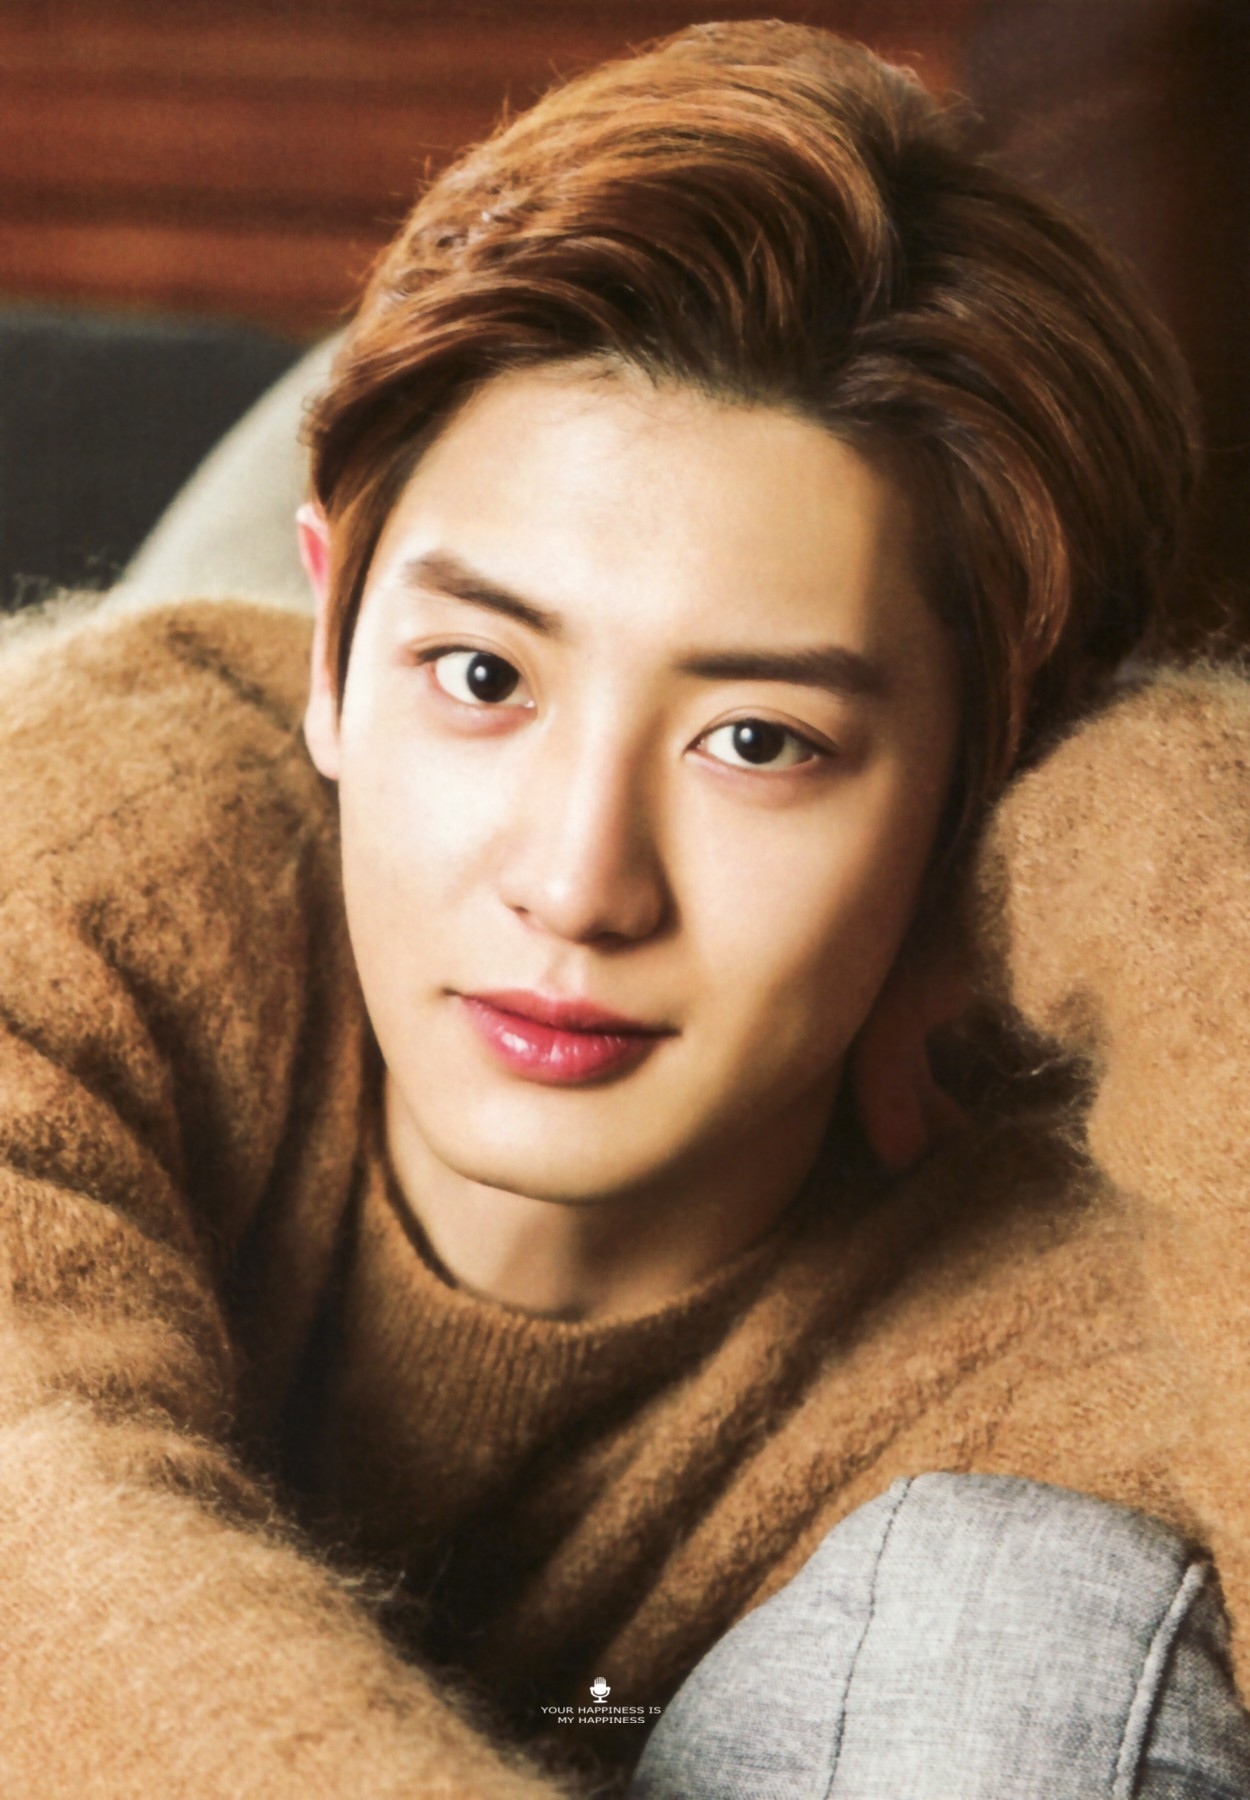 Chanyeol For Haruhana Magazine Vol 42 Exo Photo 40456662 Fanpop